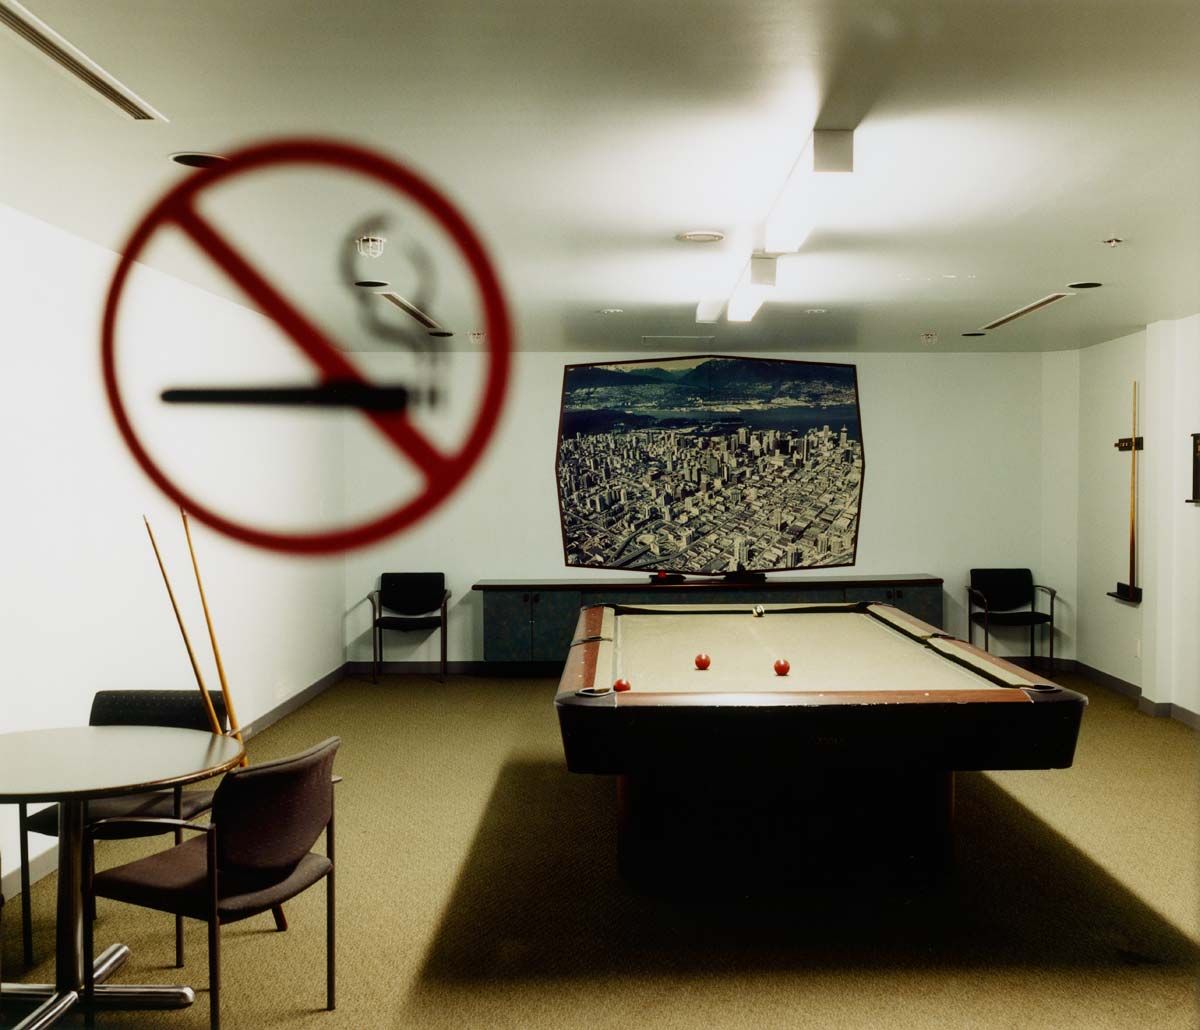 Pool Table, Vancouver, Canada